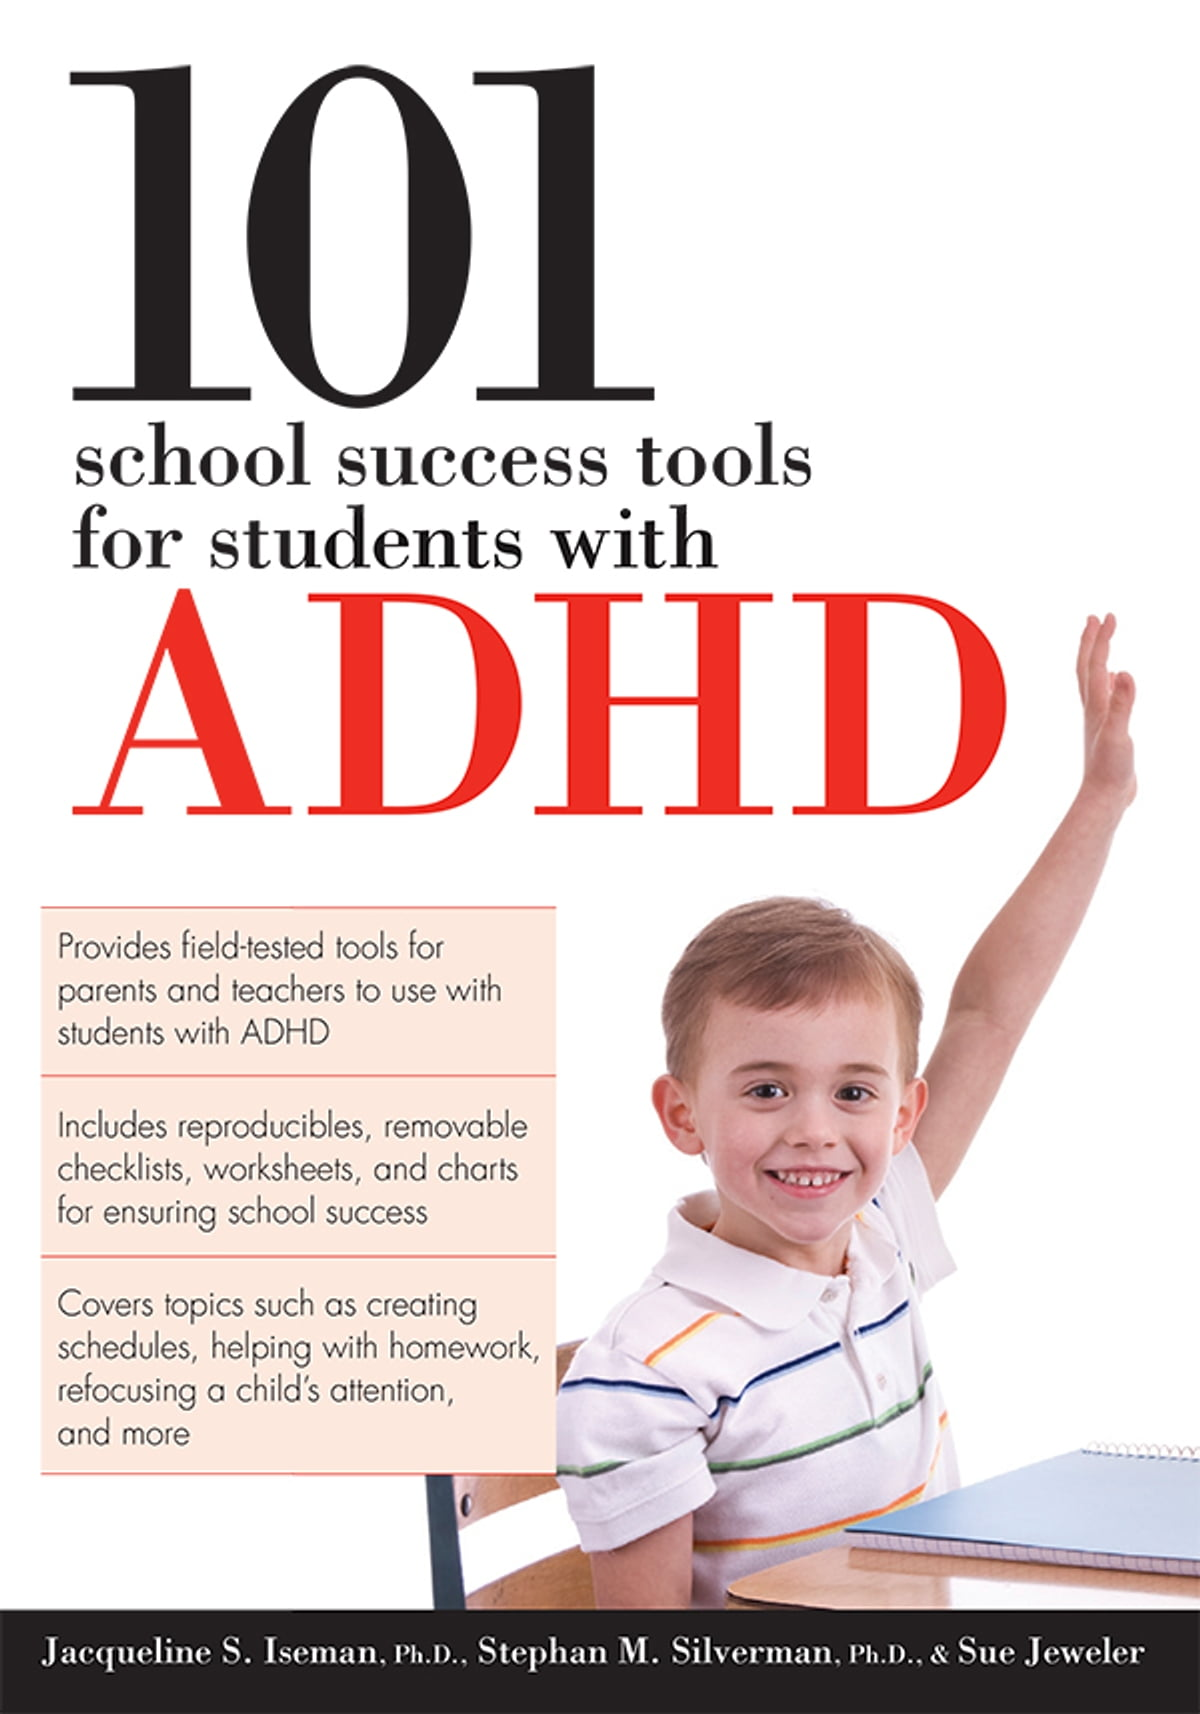 101 School Success Tools for Students with ADHD eBook by Jacqueline Iseman,  Ph.D. - 9781593635329 | Rakuten Kobo